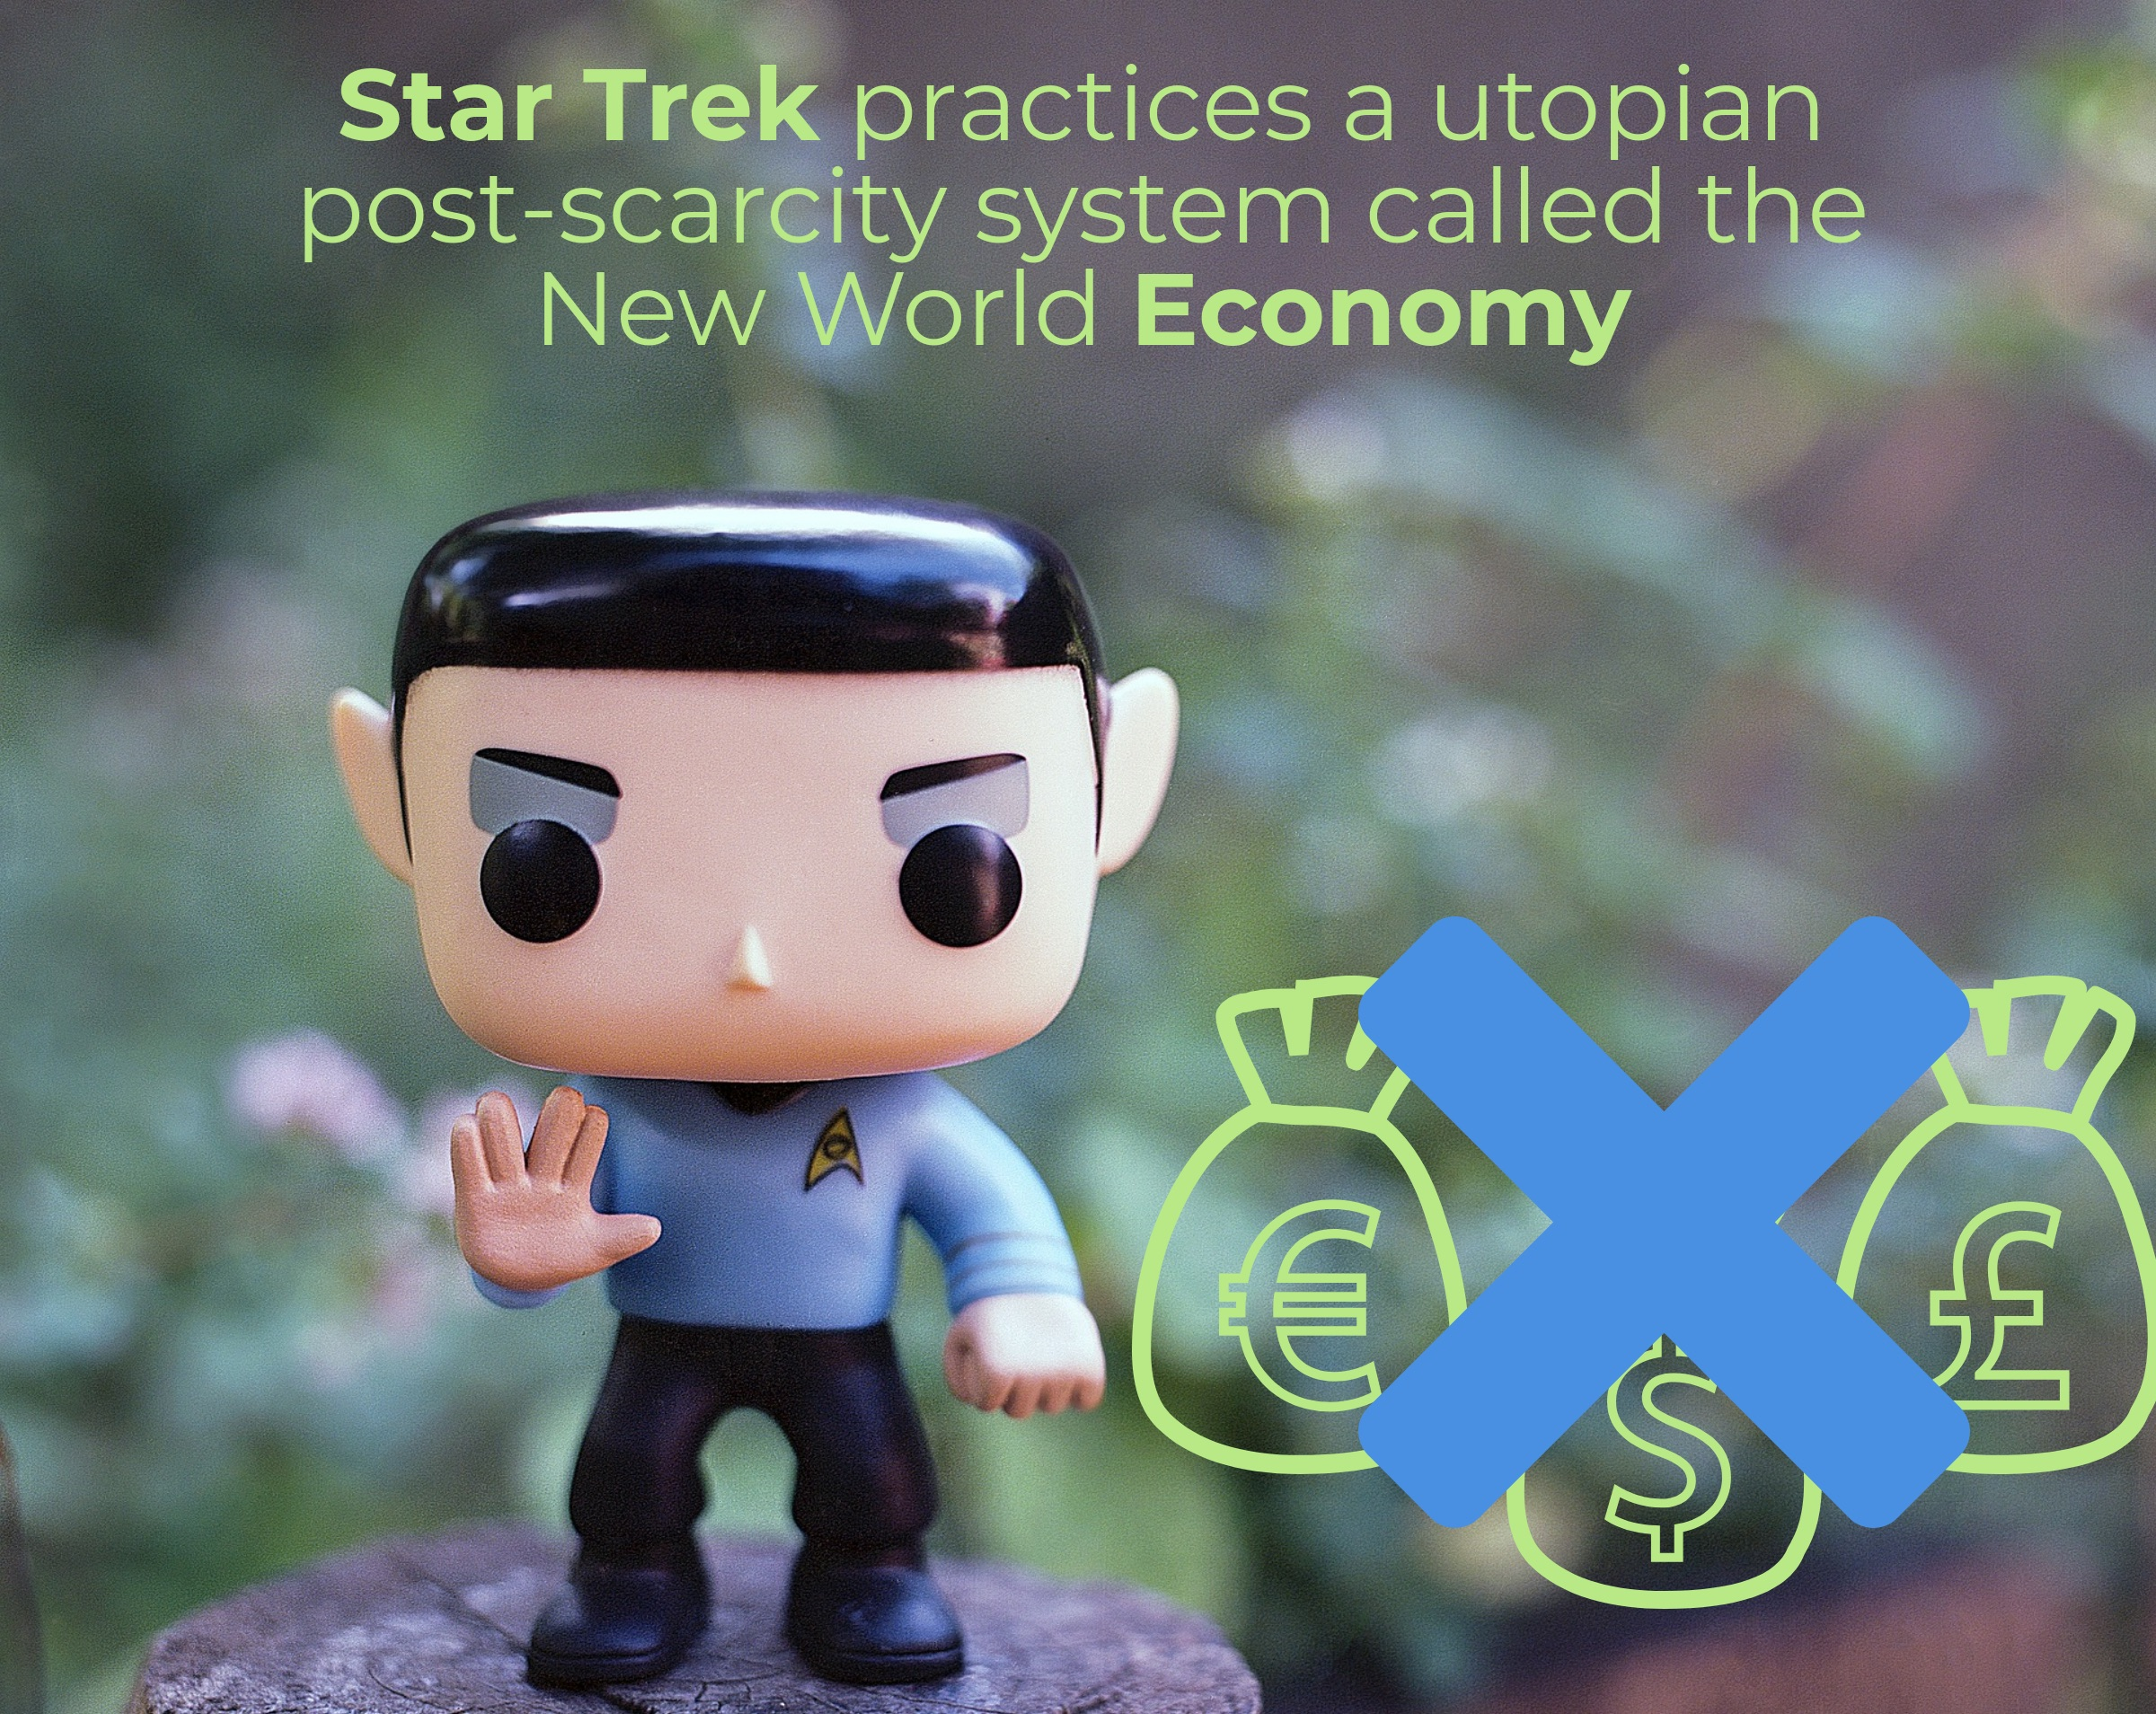 Star Trek Economy of abundance